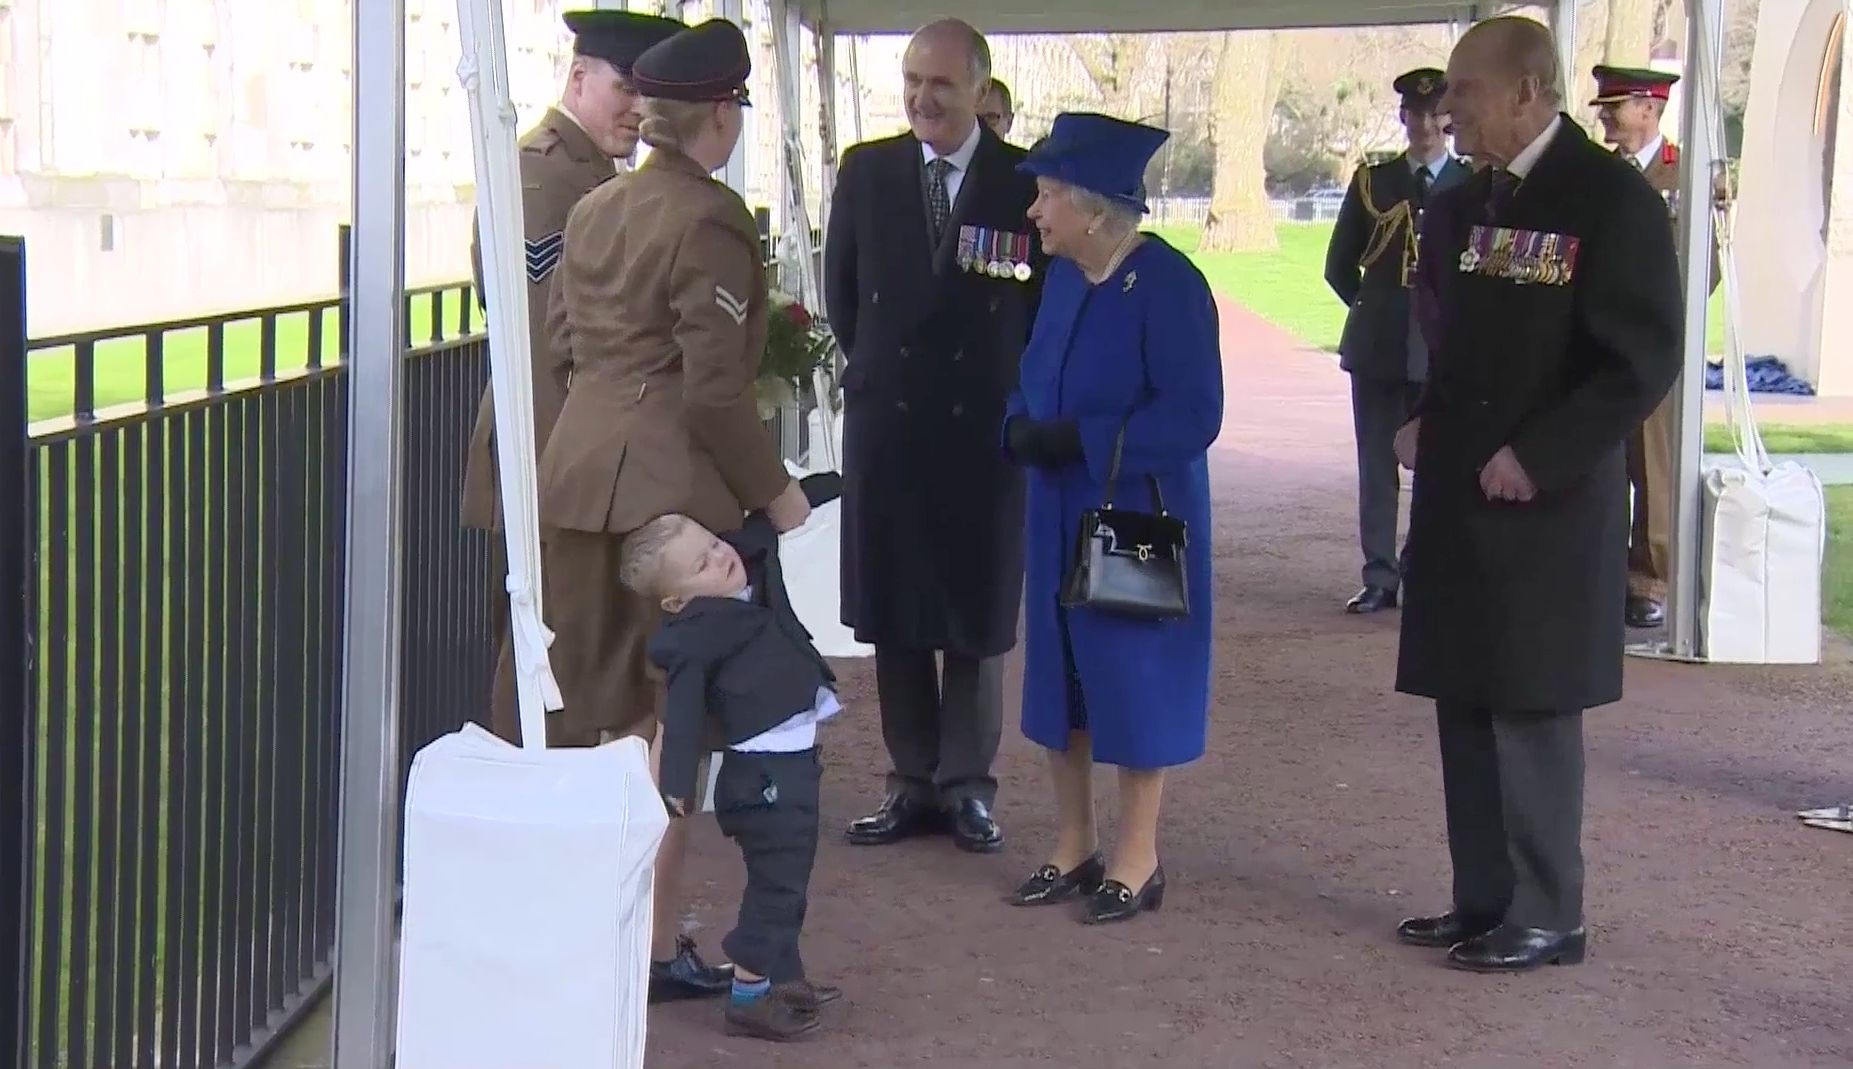 The Queen Proves She's Not One For Judging Toddler Tantrums And Theresa May Demos Child Calming